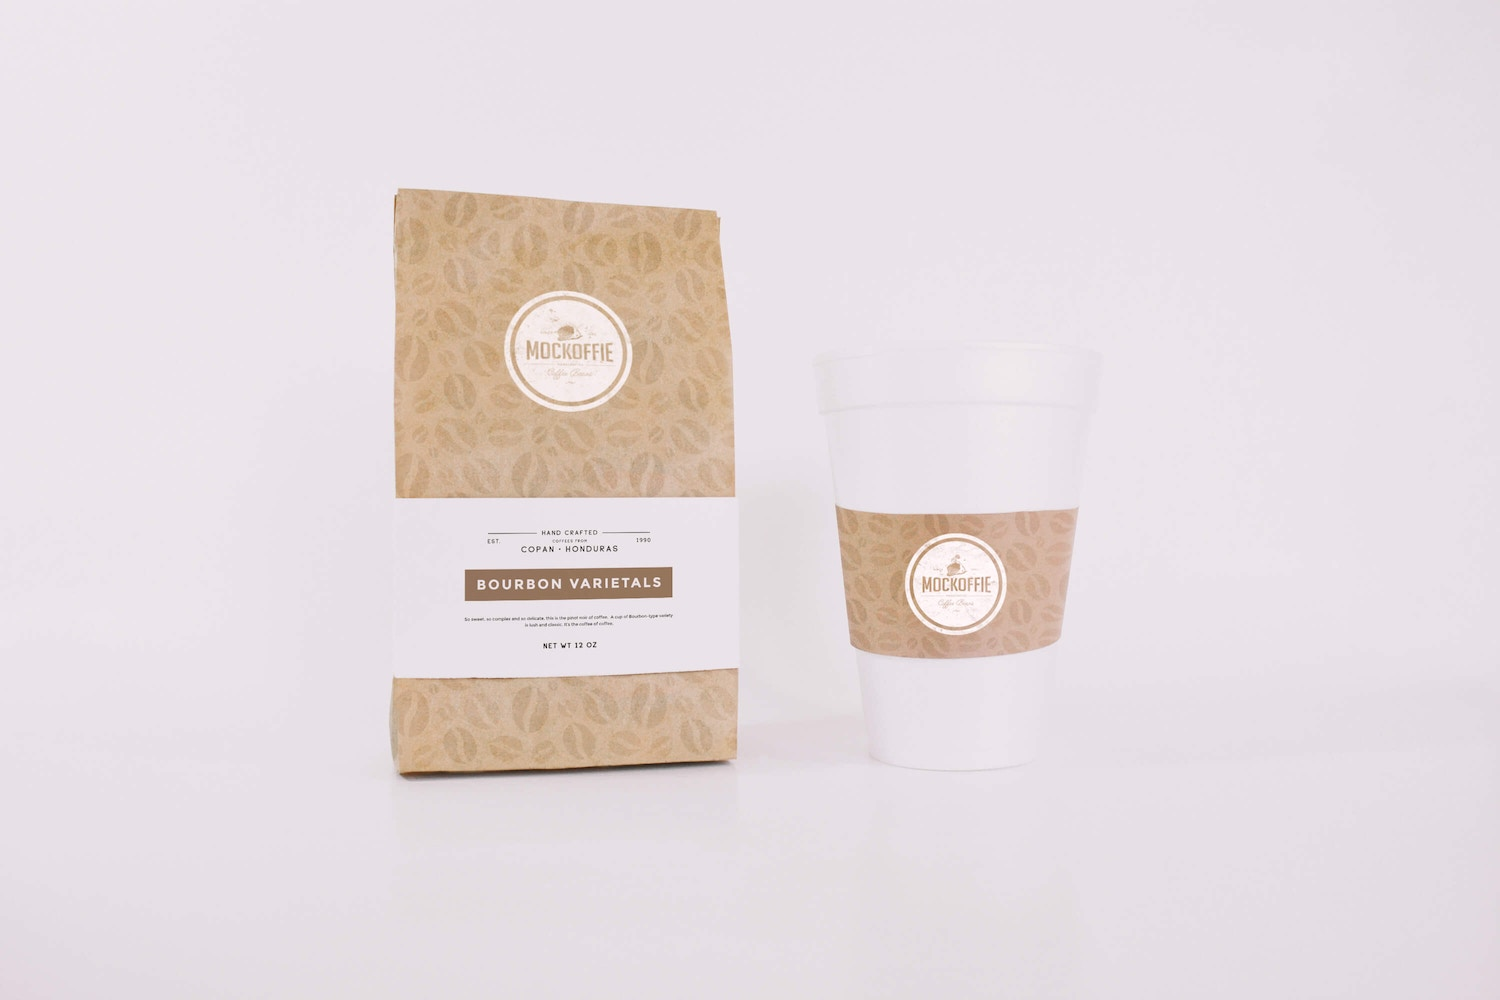 Coffee Bag and Cup Mockup (1) por Eduardo Mejia en Original Mockups